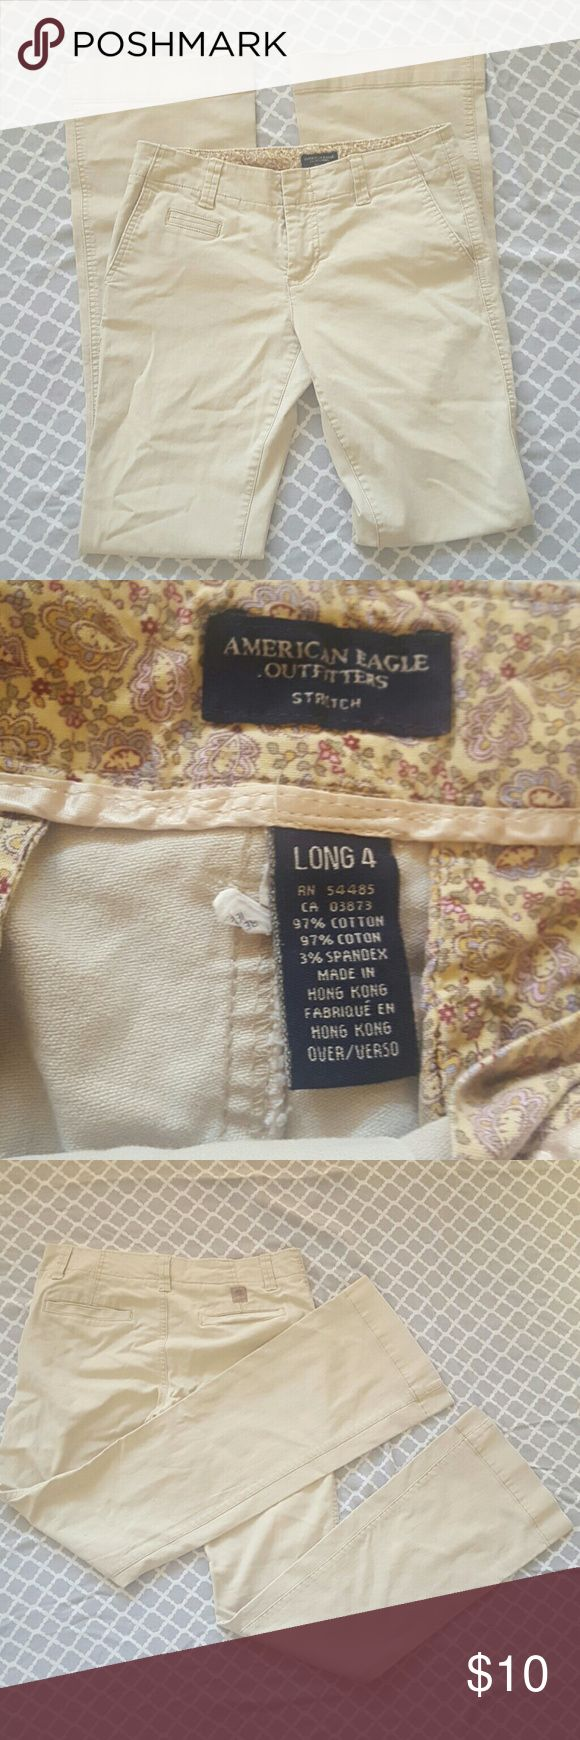 """American Eagle Pants Cute and casual. Make any outfit put together easily. Great for work. 4 long. 33"""" inseam. American Eagle Outfitters Pants Trousers"""